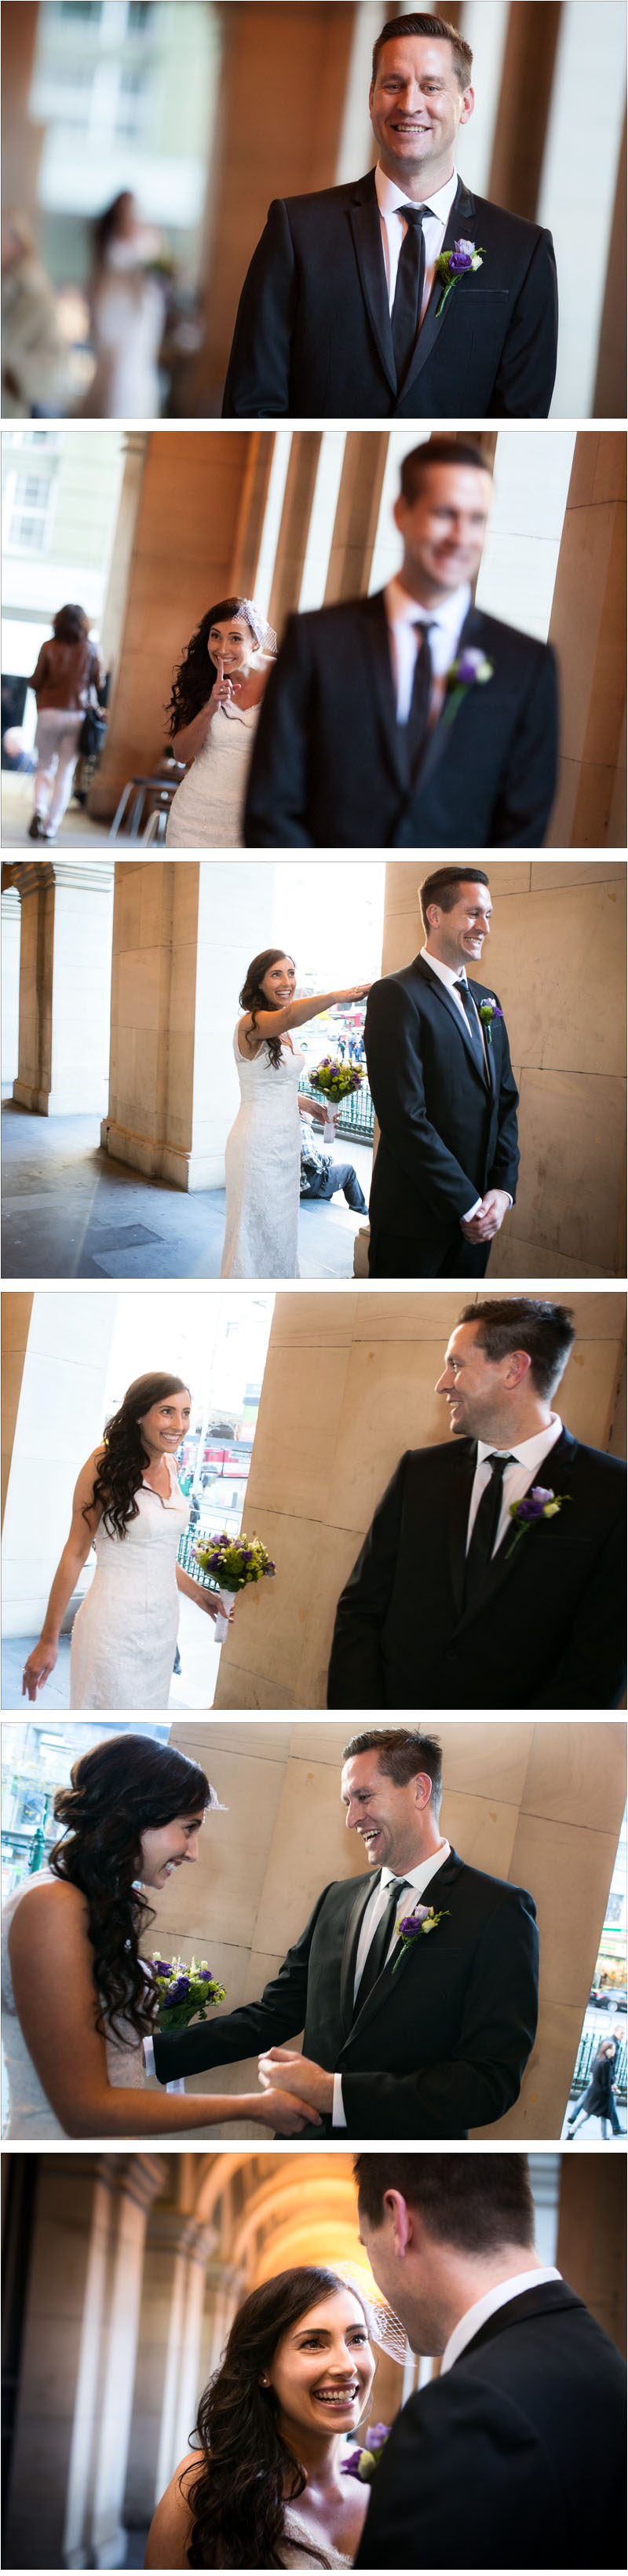 photo series of bride reveal at the Melbourne GPO